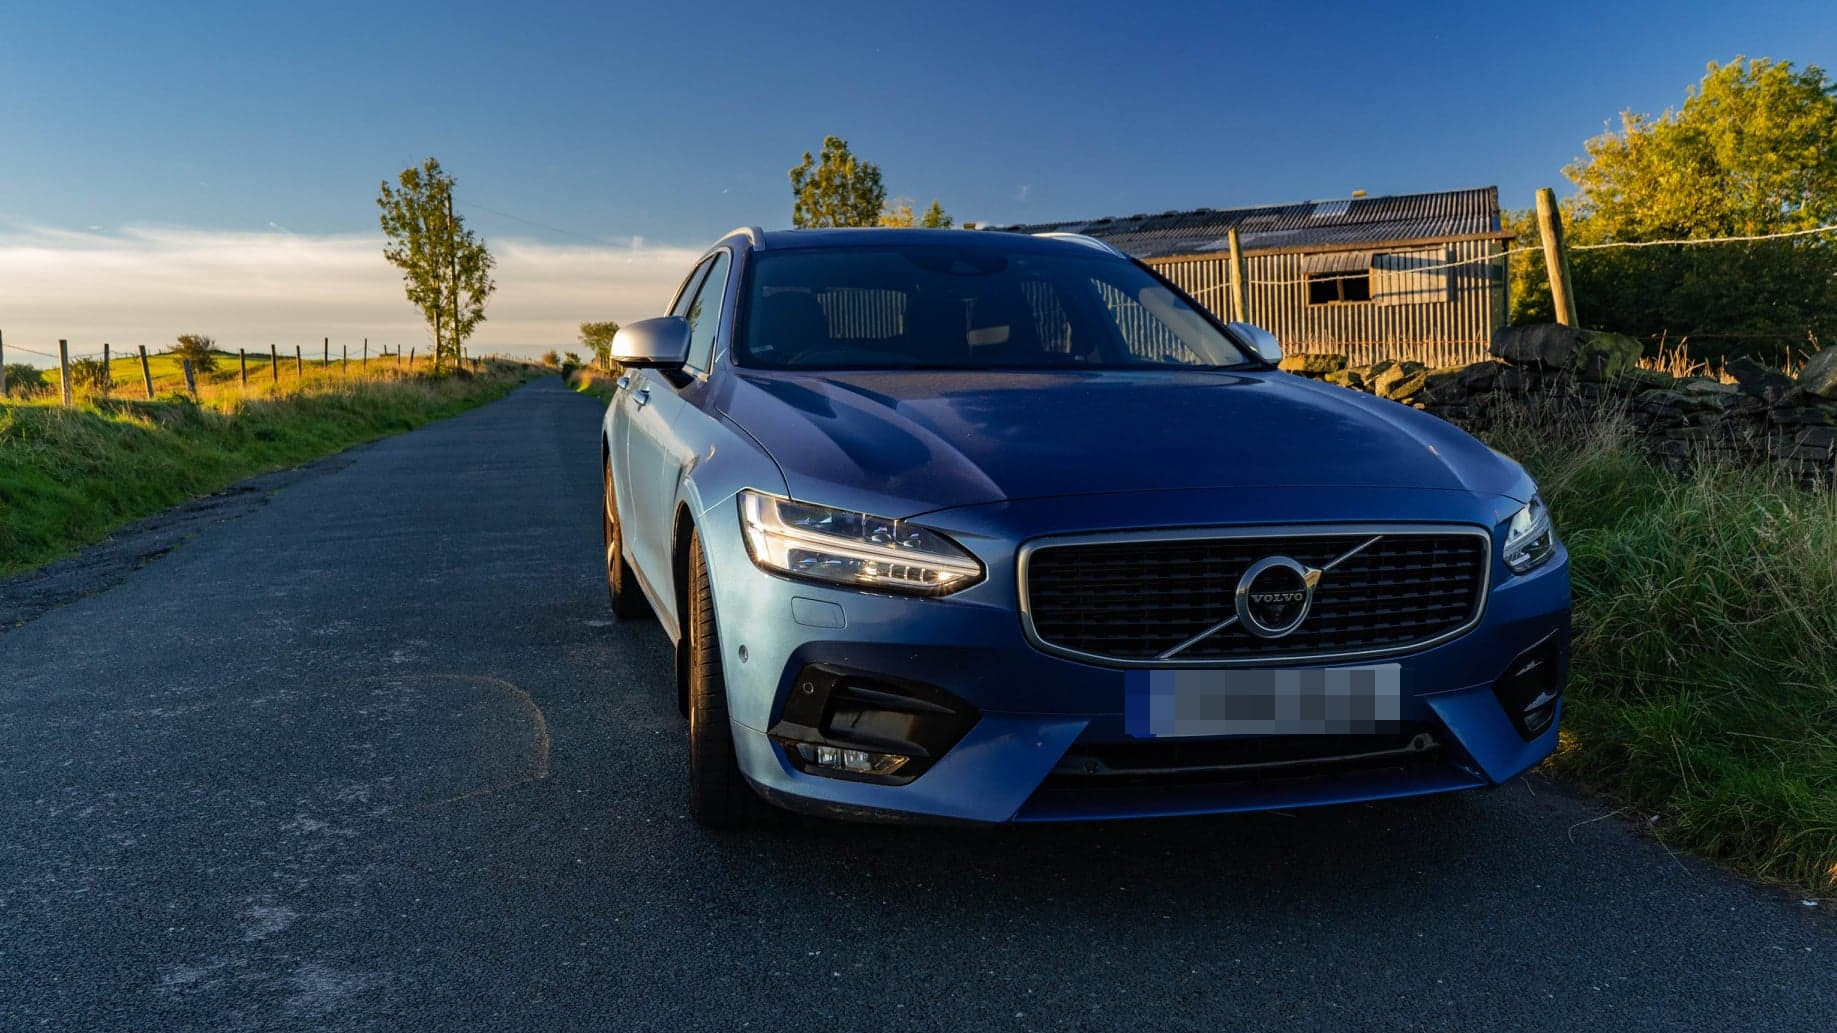 Volvos being recalled amid engine fire risk